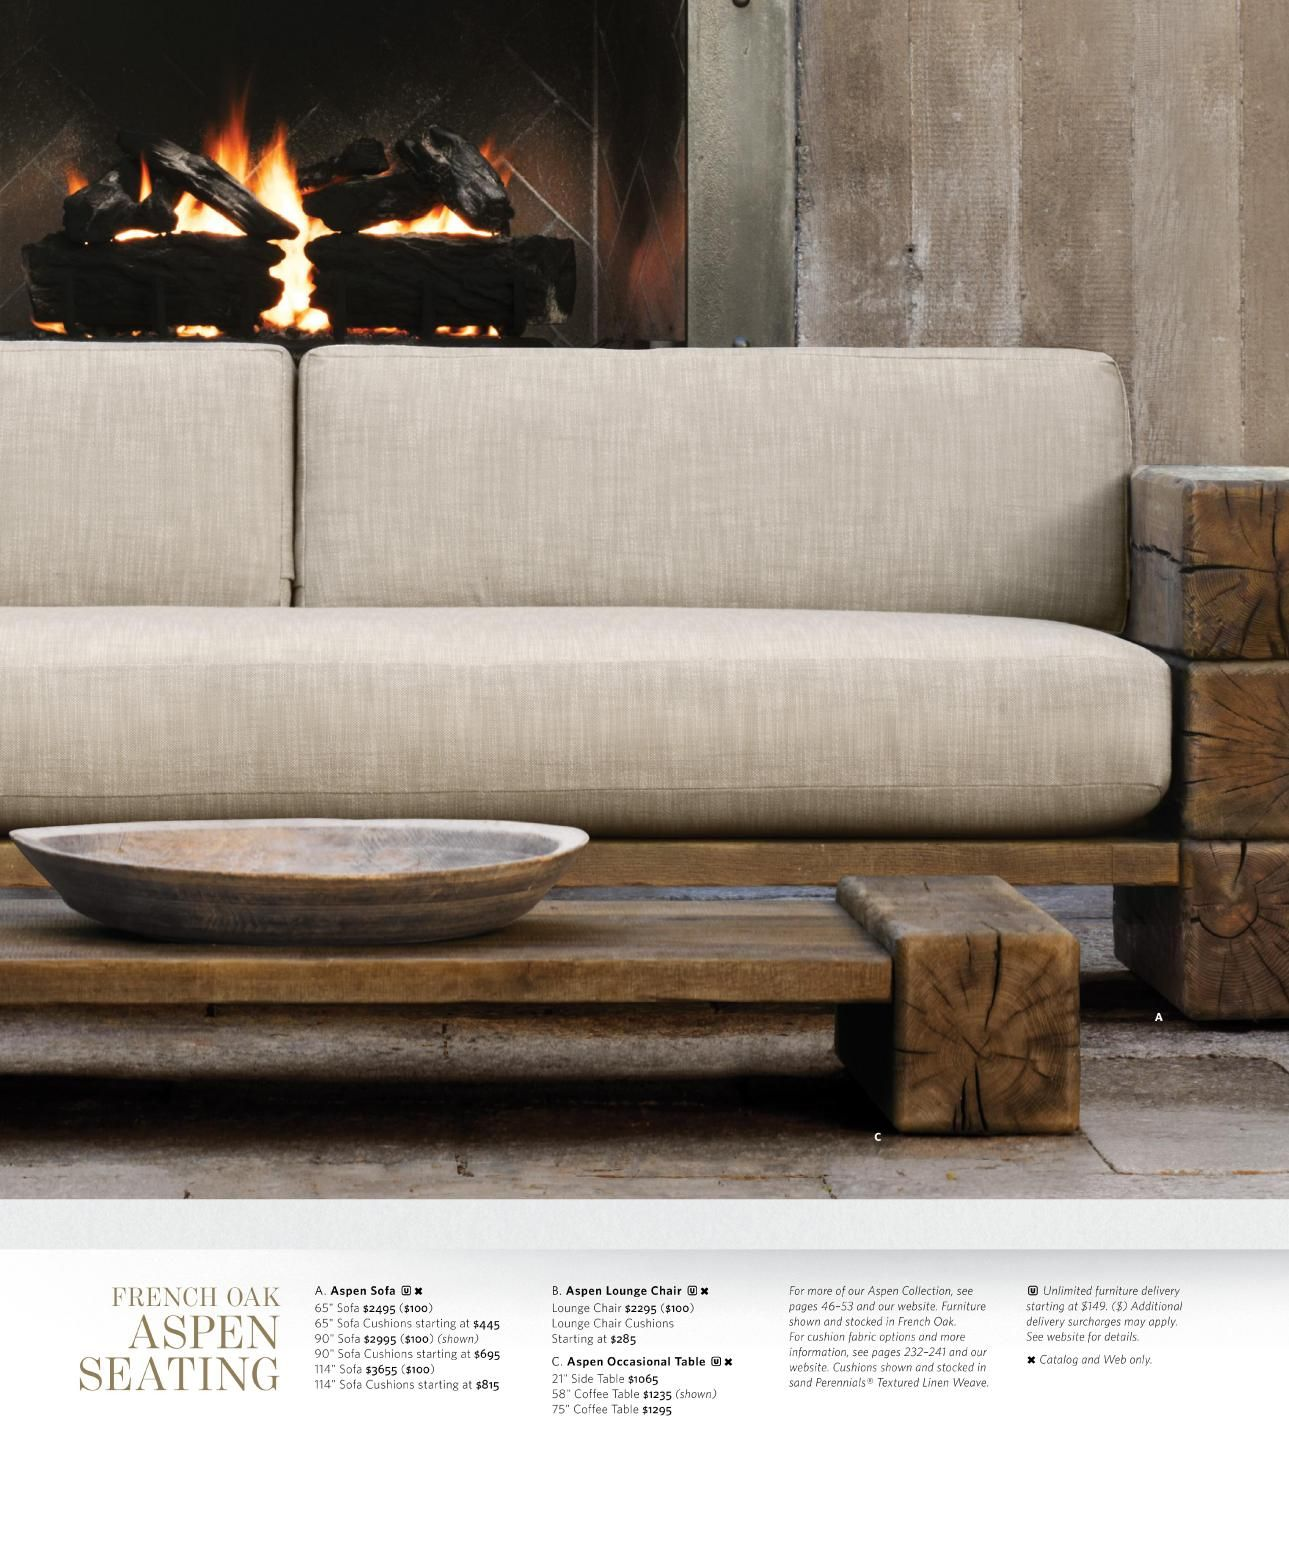 Restoration hardware 2014 source book outdoor